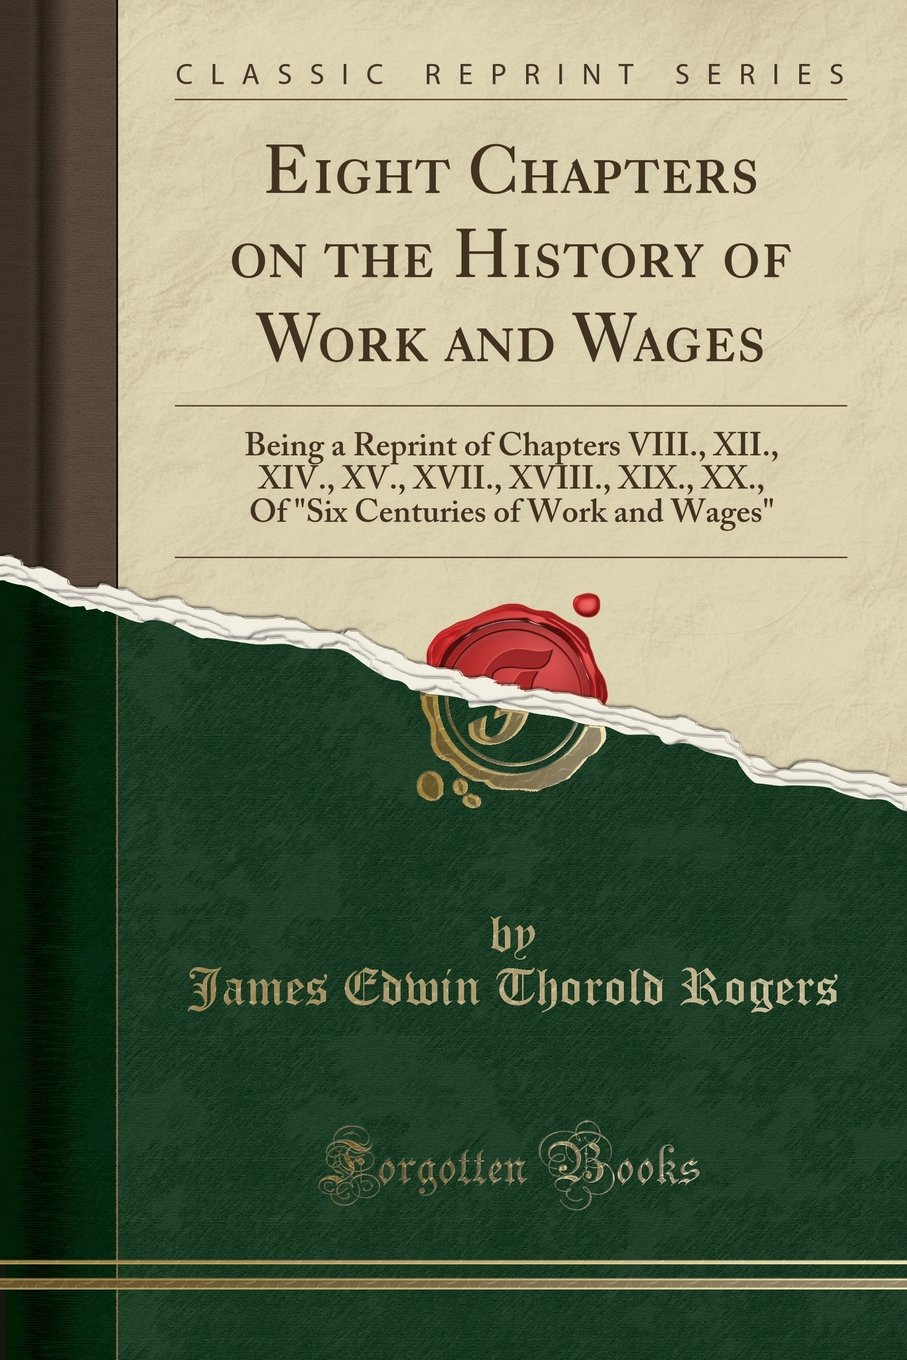 "Eight Chapters on the History of Work and Wages: Being a Reprint of Chapters VIII., XII., XIV., XV., XVII., XVIII., XIX., XX., Of ""Six Centuries of Work and Wages"" (Classic Reprint) ebook"